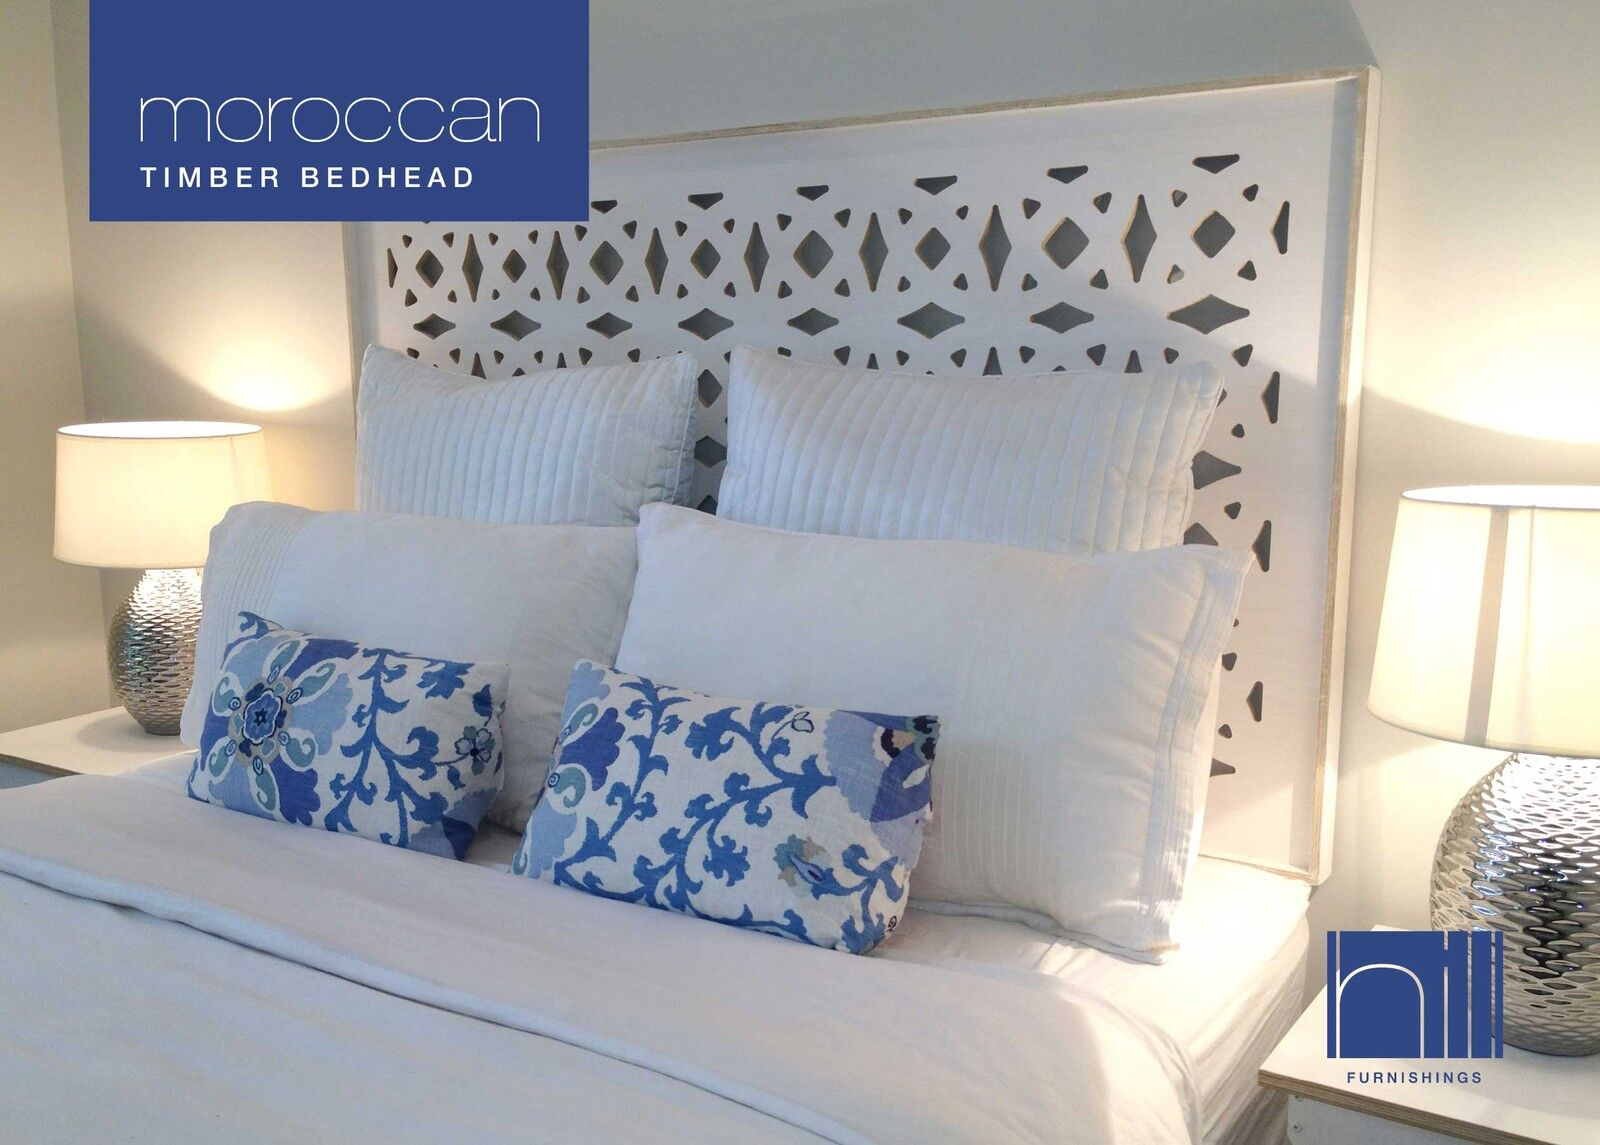 Moroccan Timber Bedhead Headboard For King Ensemble